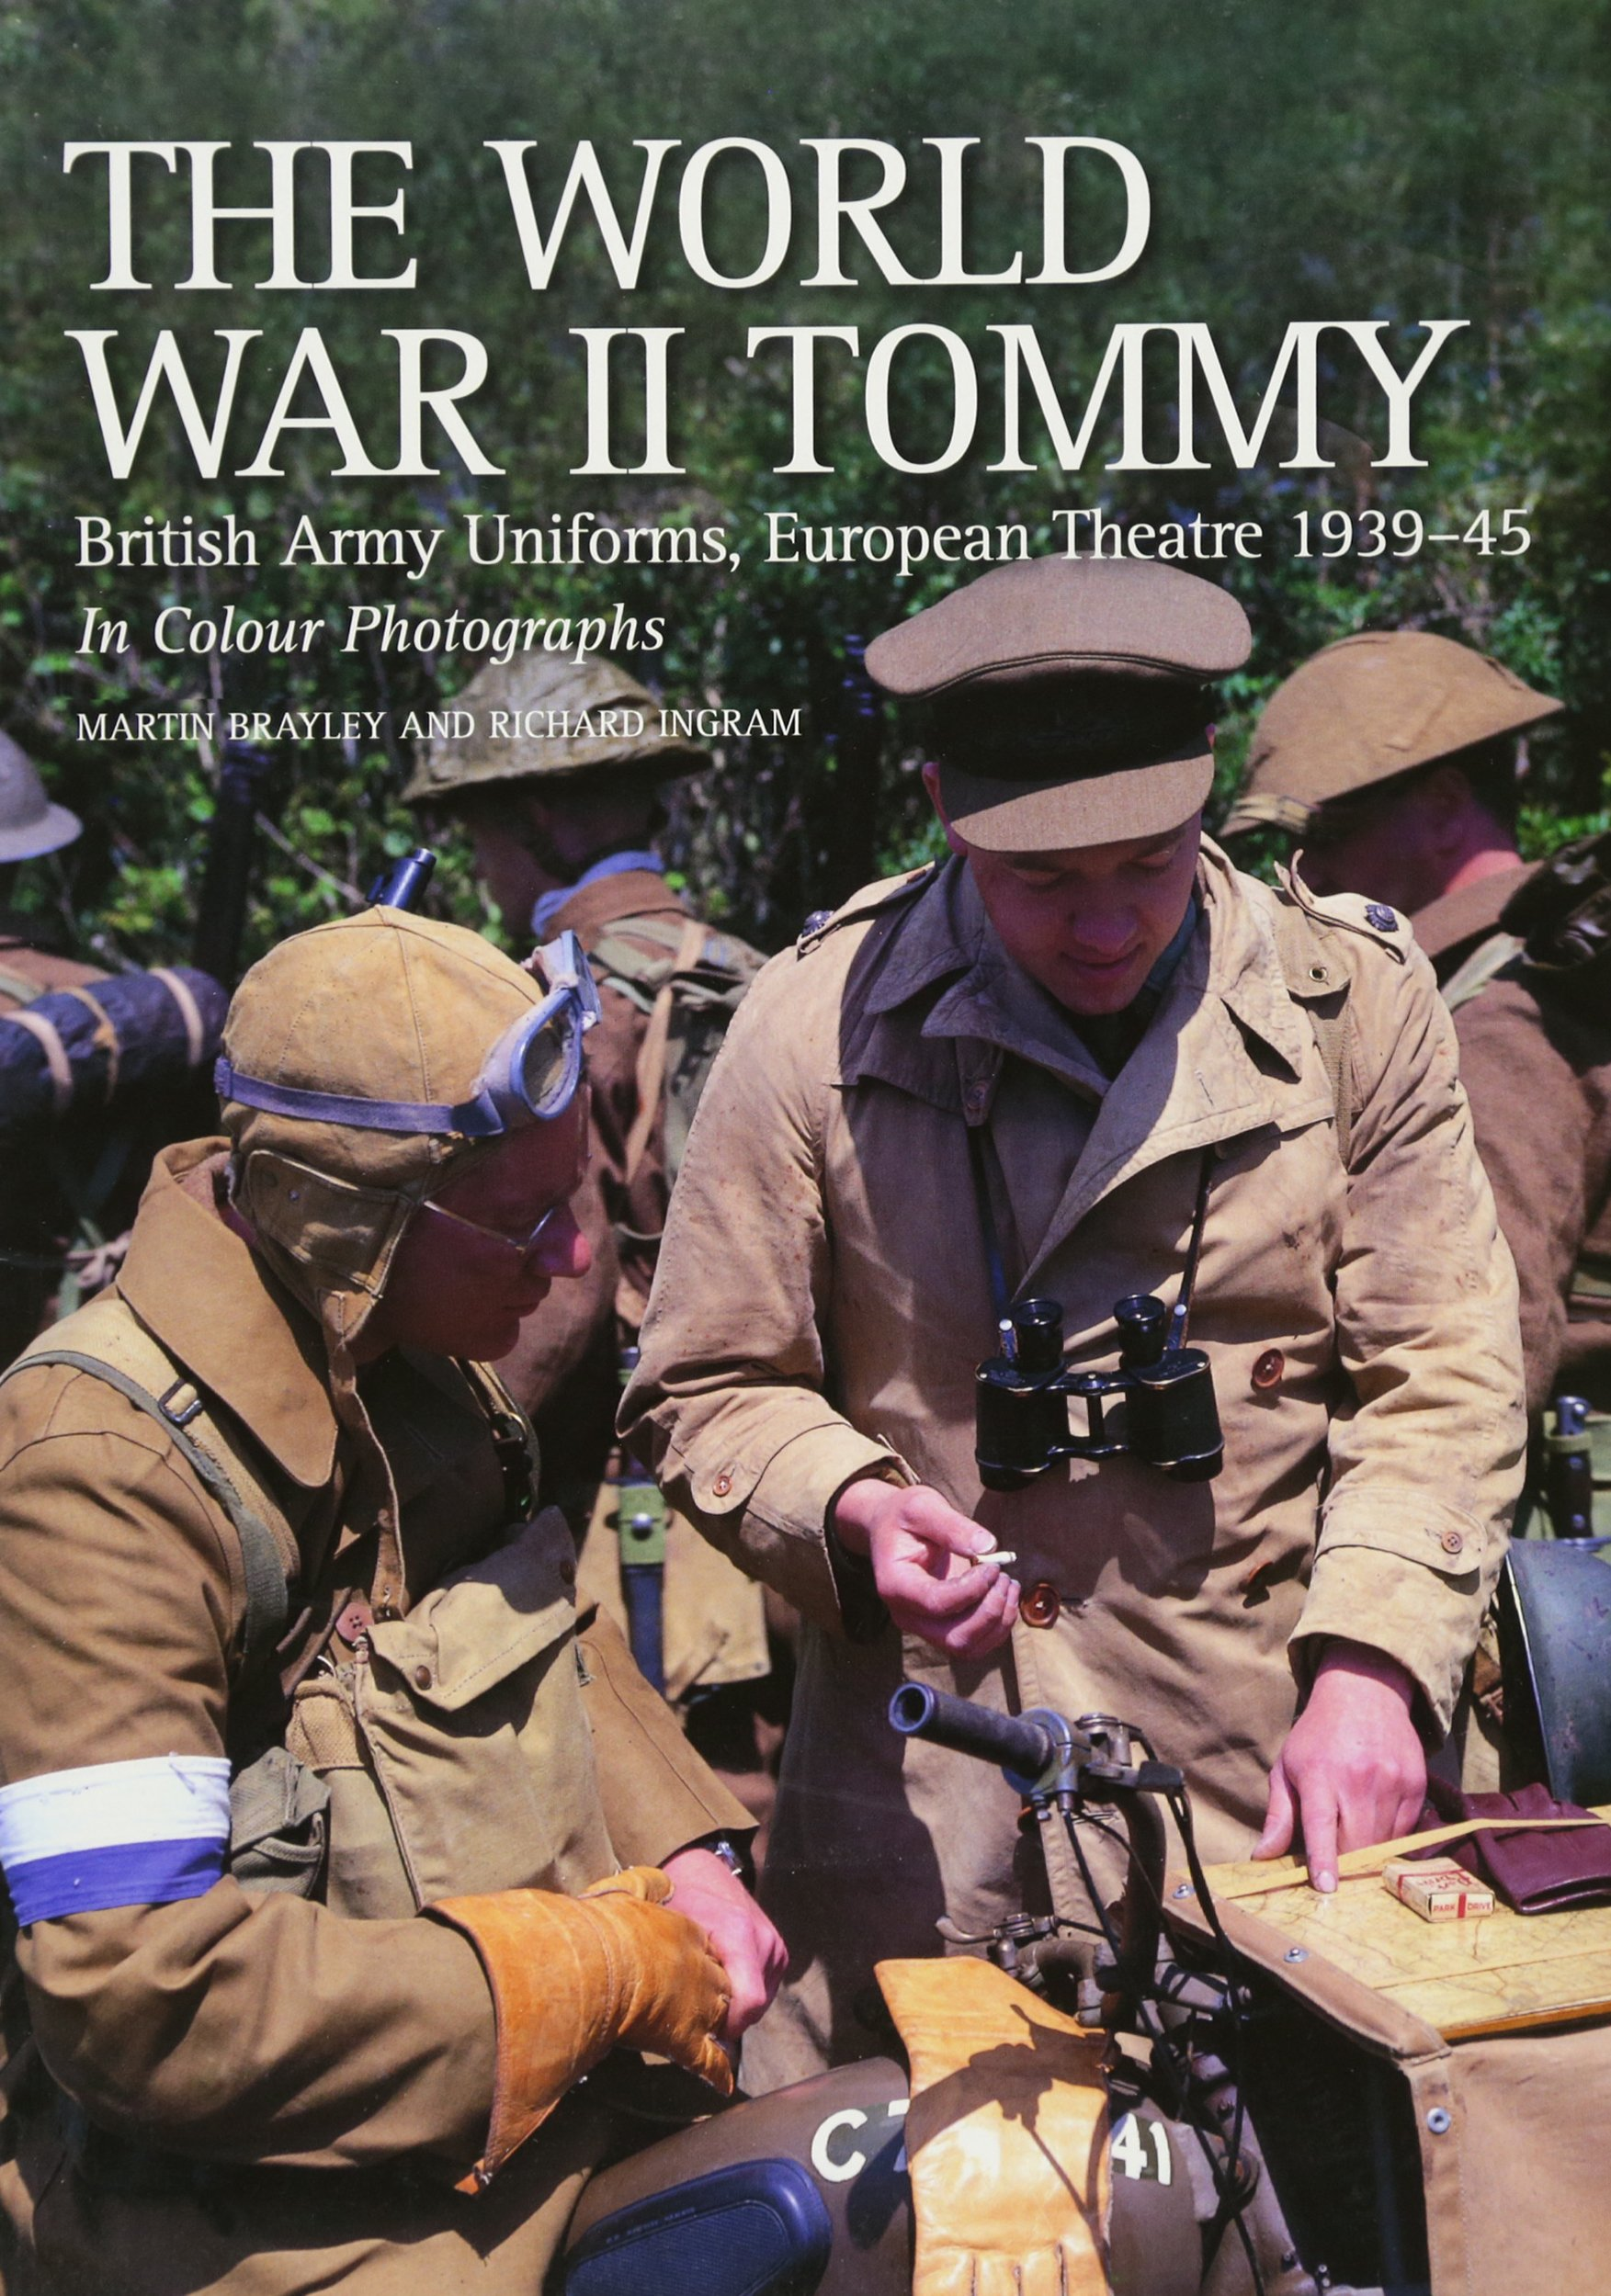 The World War II Tommy: British Army Uniforms, European Theatre 1939-45:  Martin Brayley, Richard Ingram: 9781861269140: Amazon.com: Books